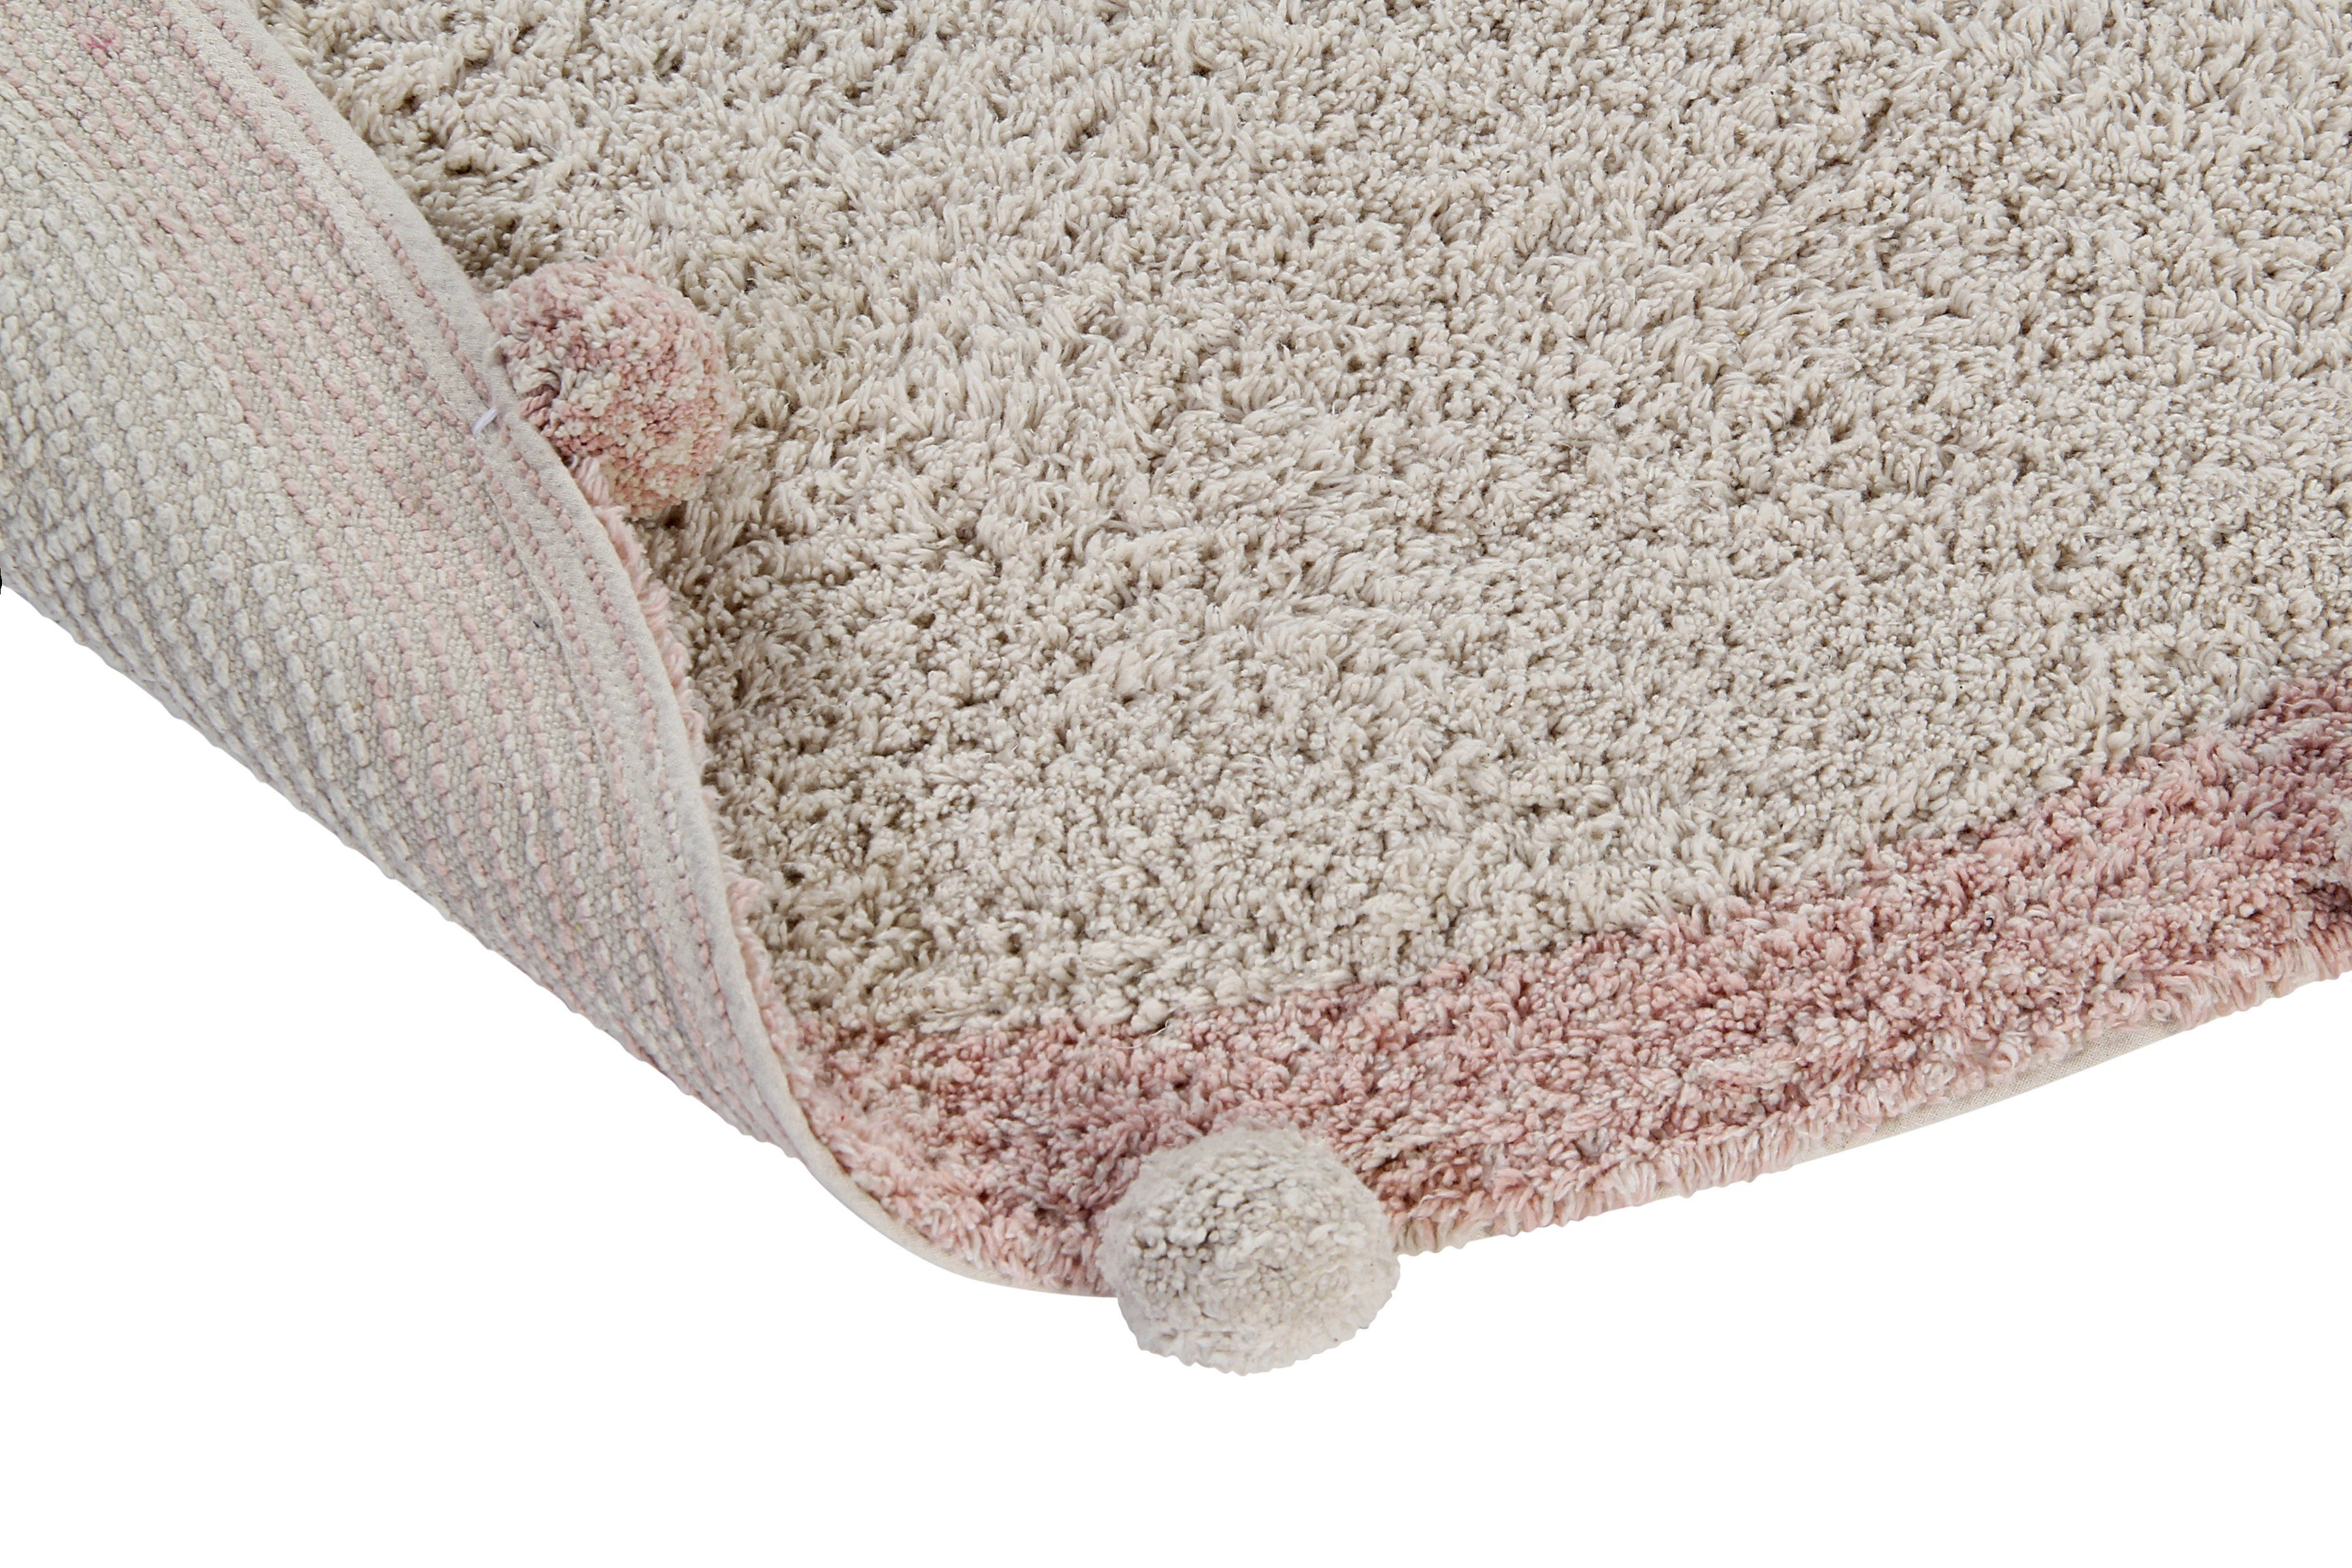 Bubbly Washable Rug - Vintage Nude - Project Nursery